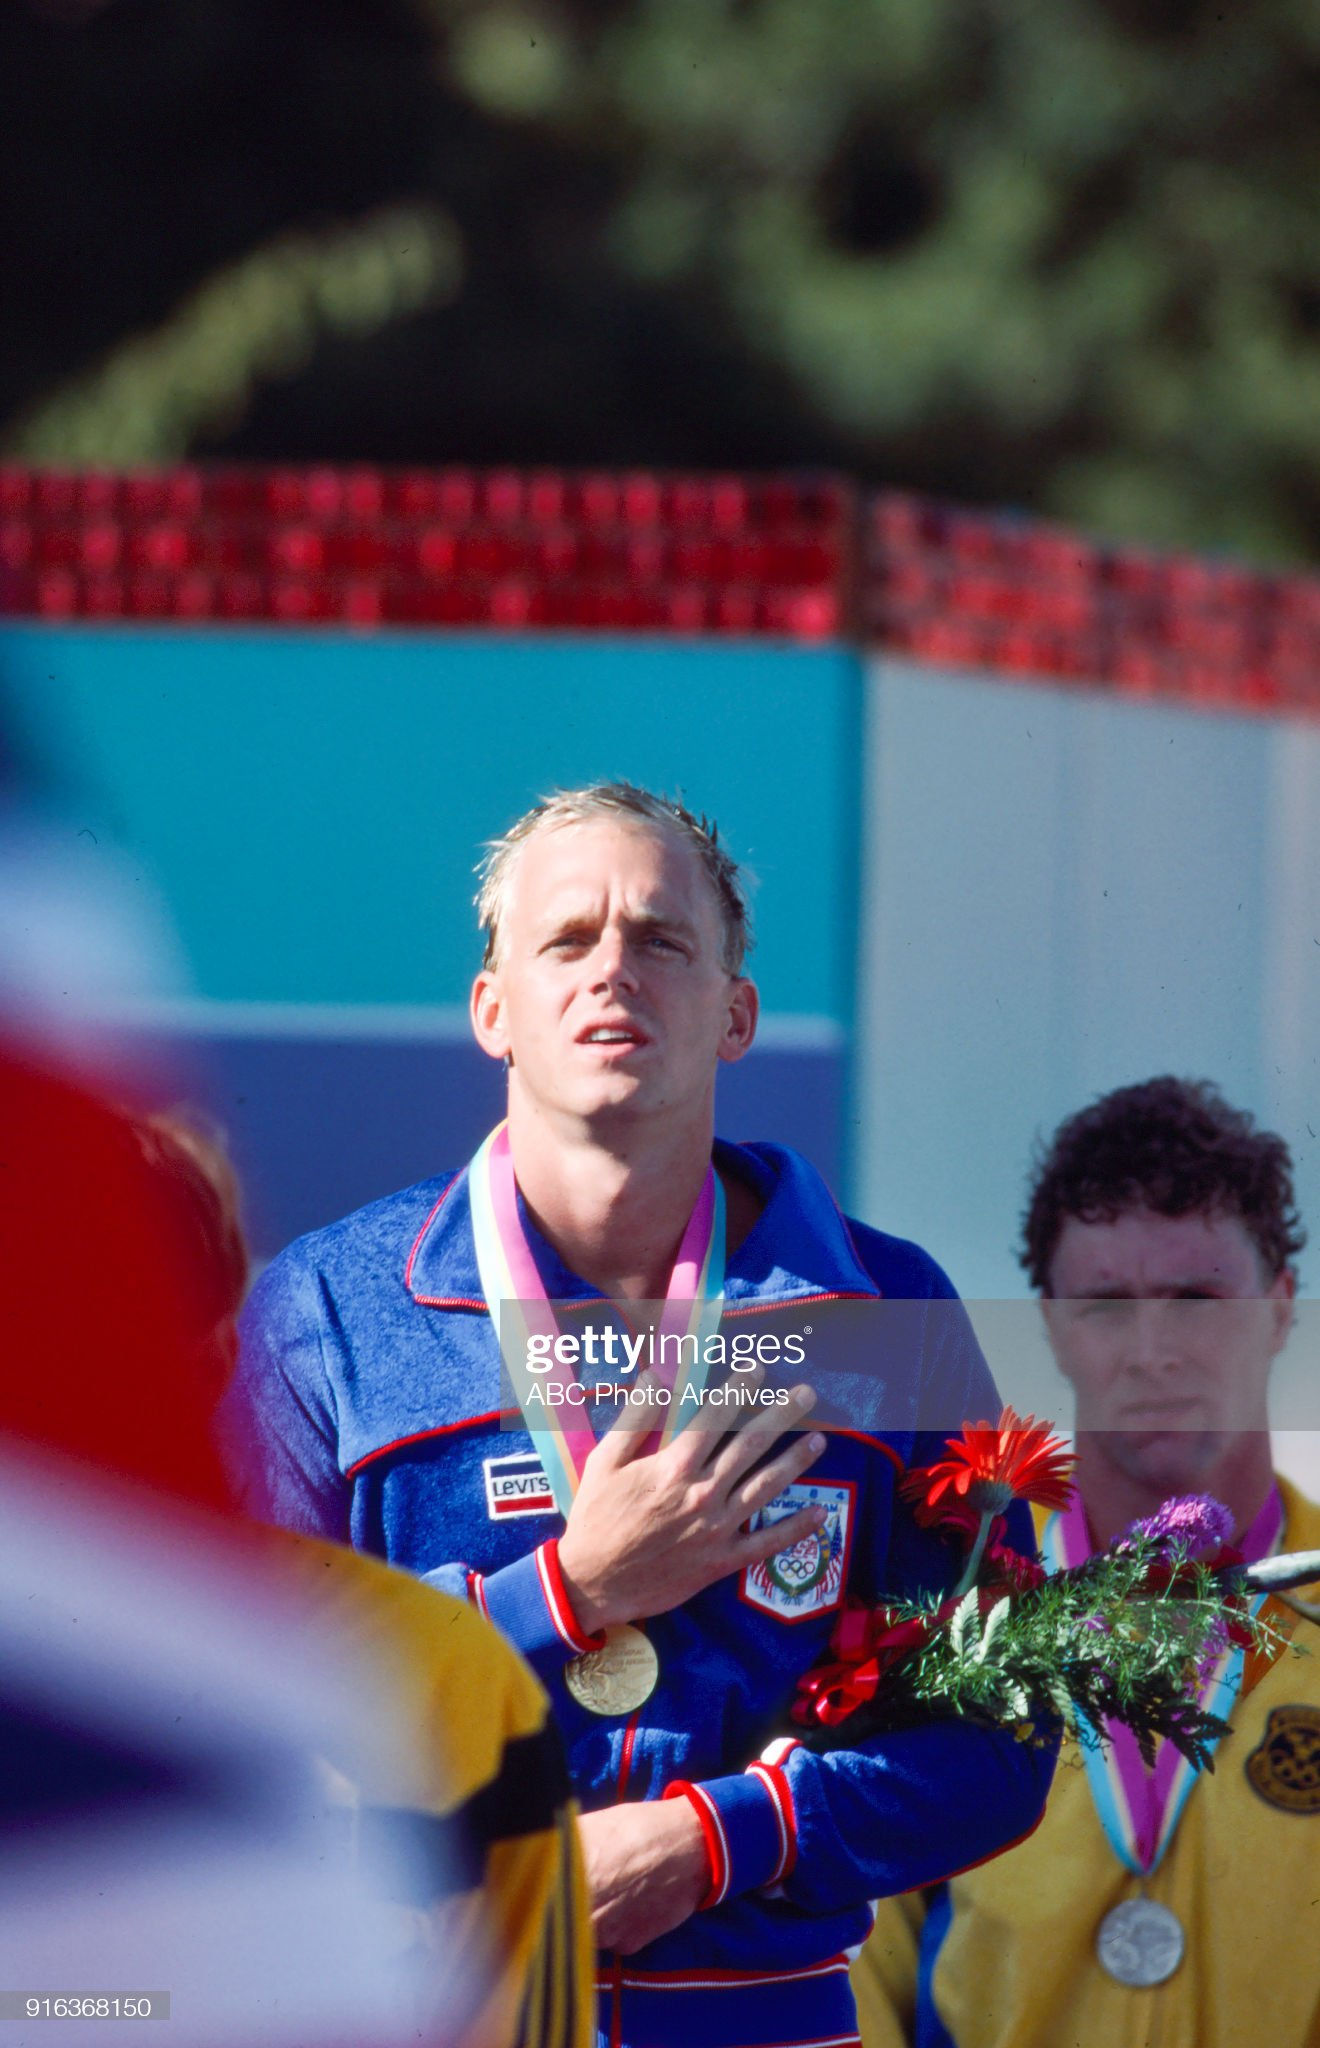 Men's Swimming 100 Metre Freestyle Medal Ceremony At The 1984 Summer Olympics : Fotografía de noticias